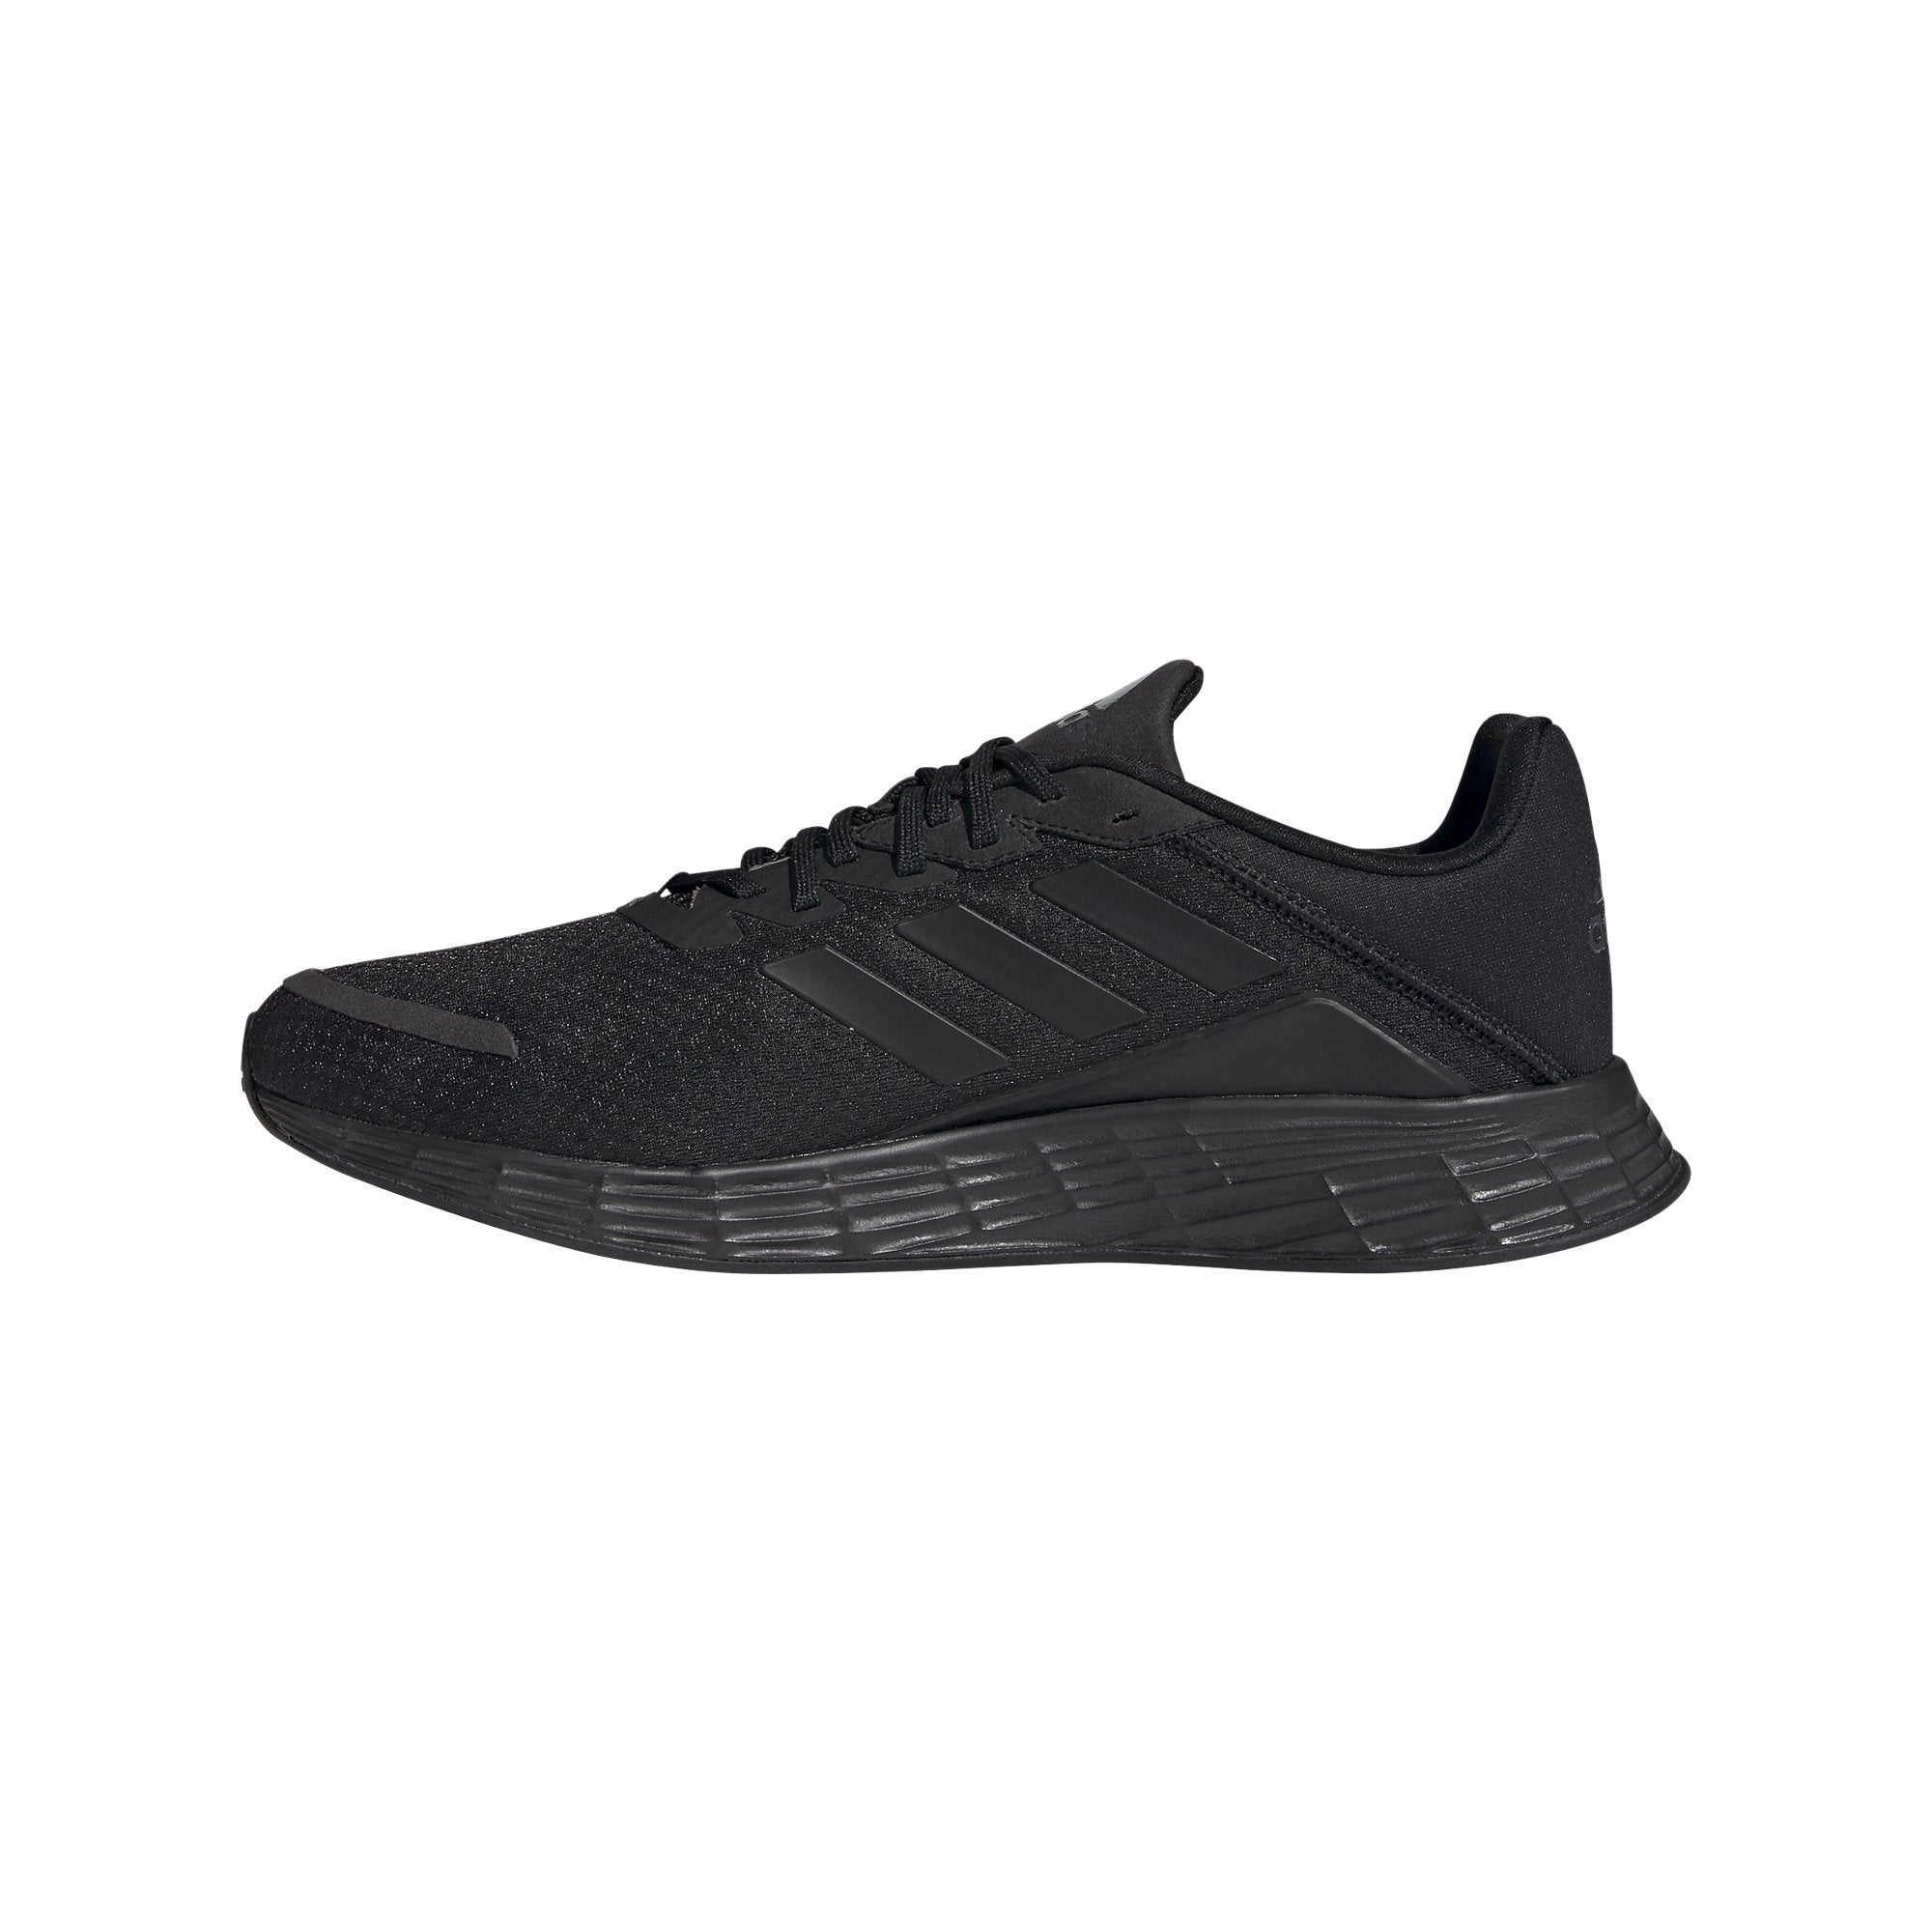 Adidas Mens Duramo SL Shoes - Core Black/Core Black/Core Black